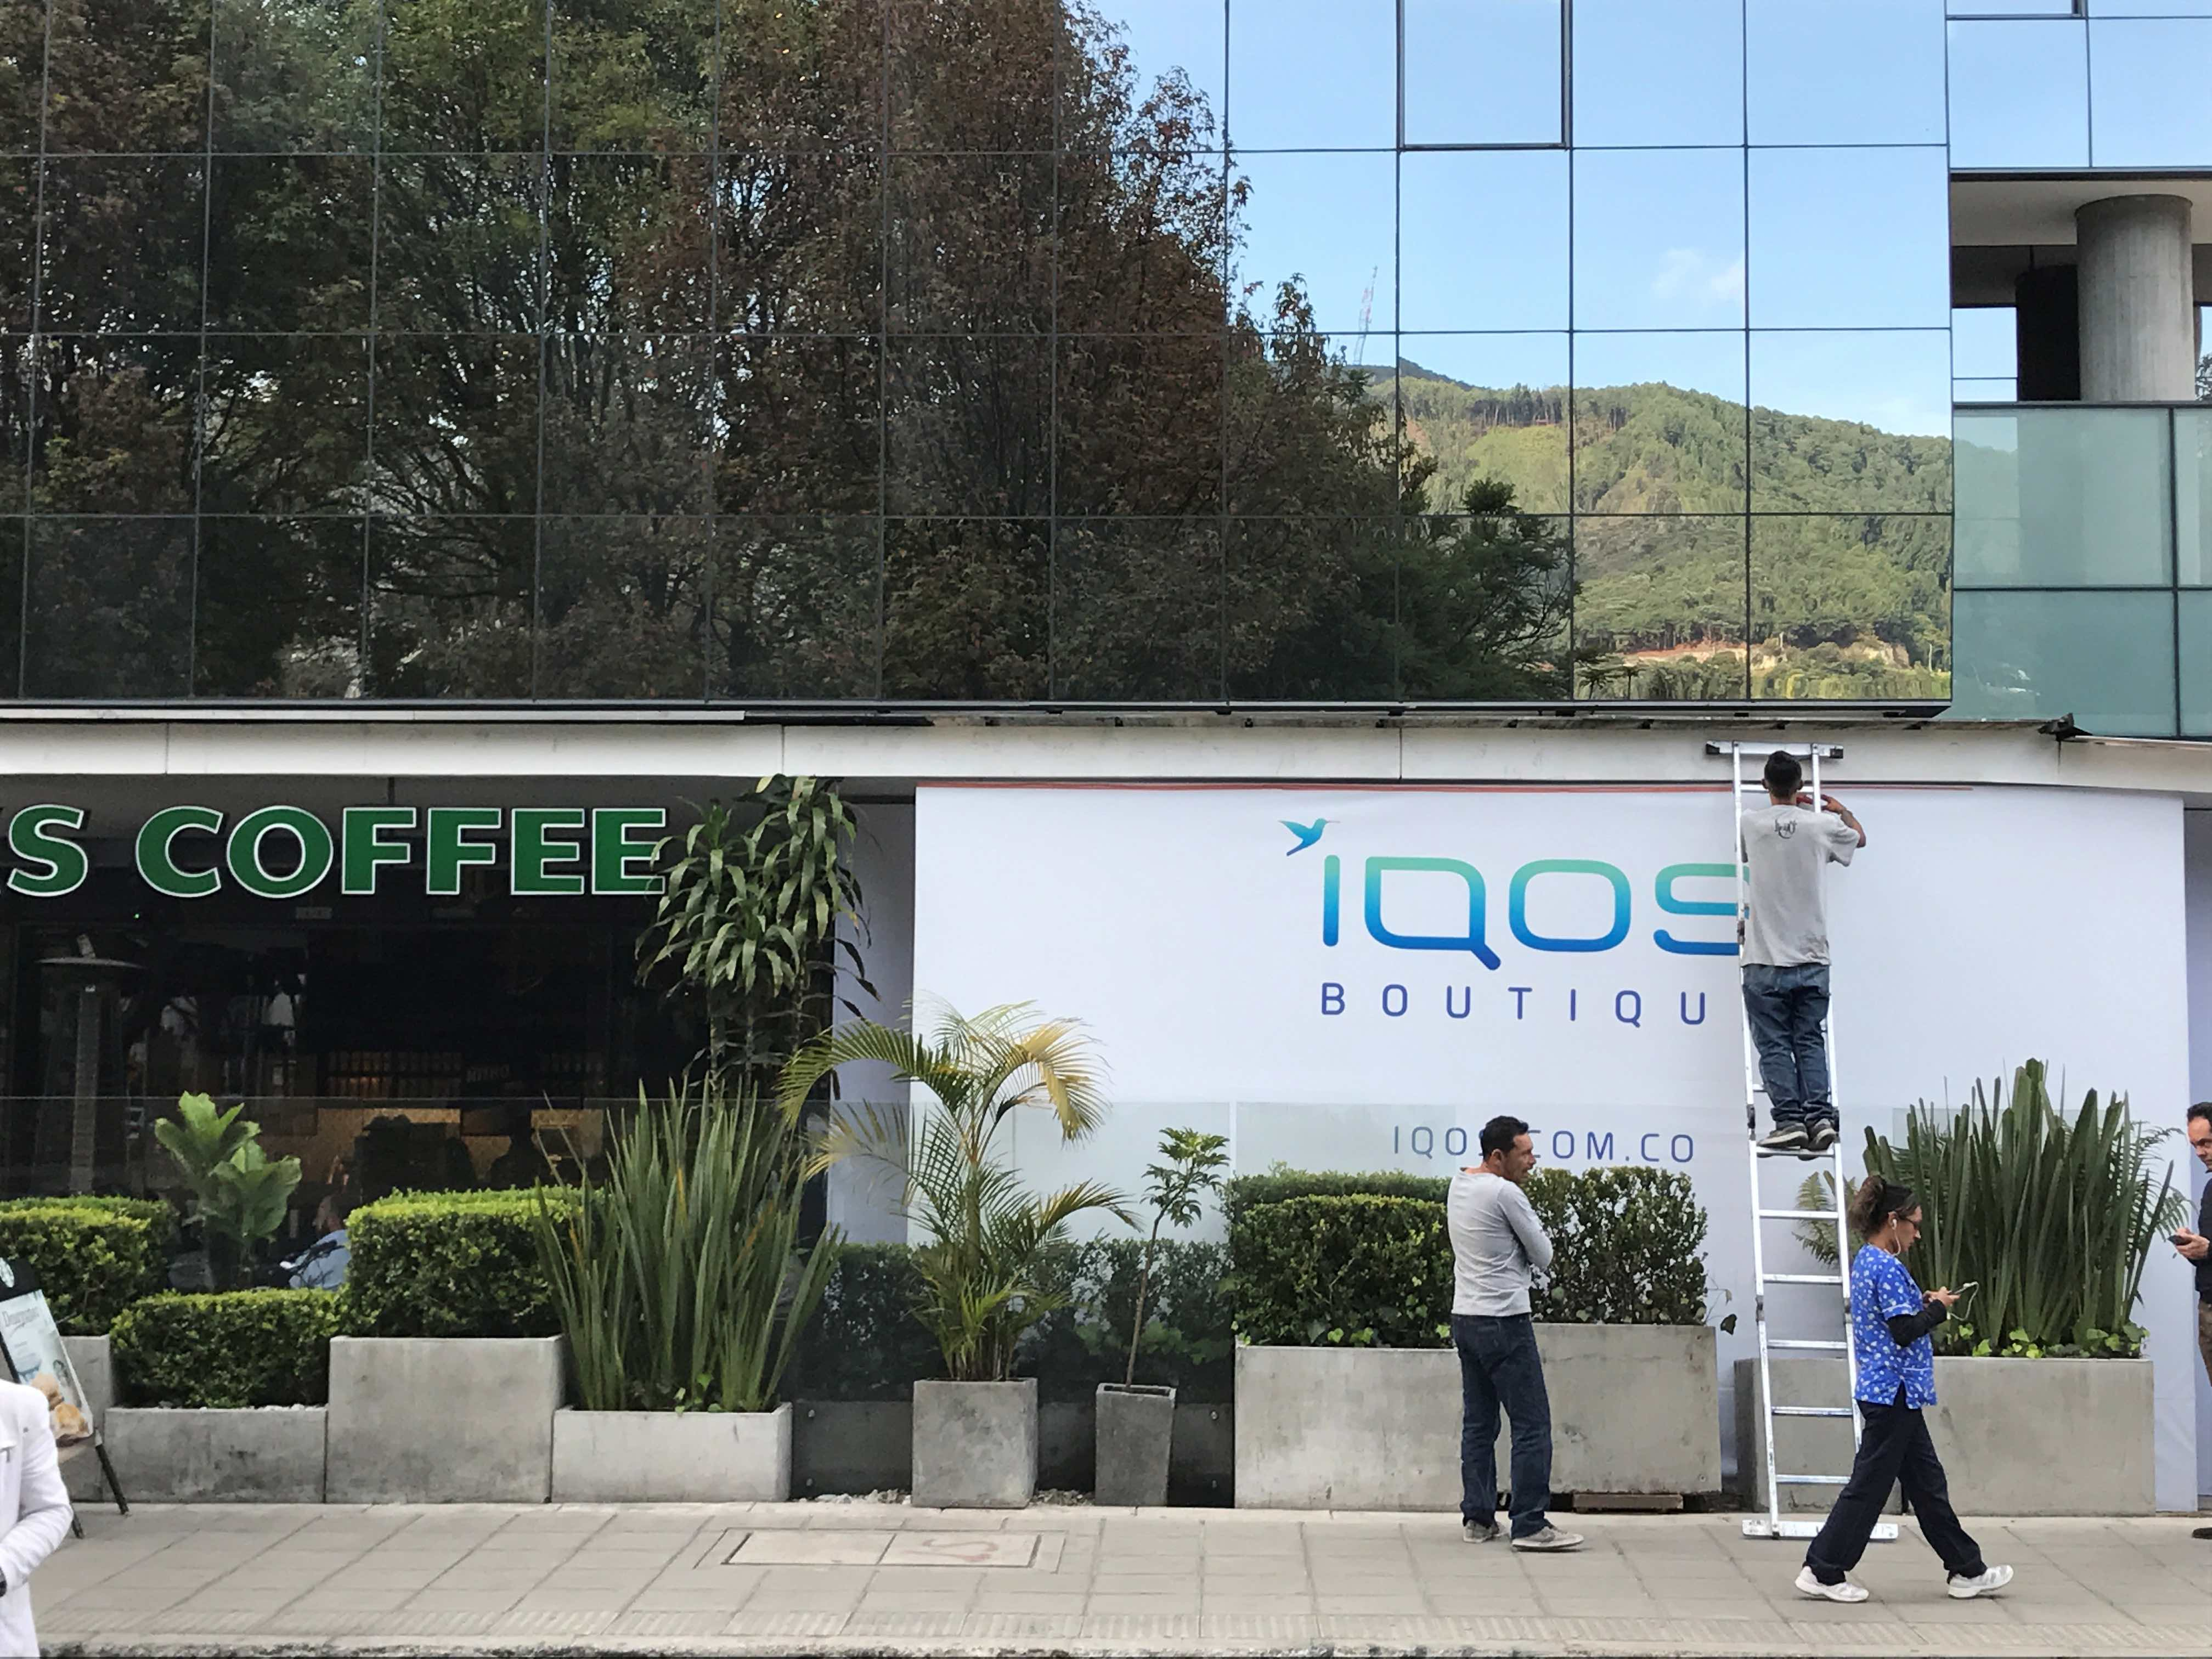 Work on a wall outside an iQOS boutique being developed in Bogota, Colombia, on September 21, 2017, to promote the new Philip Morris product. Picture taken September 21, 2017. Credit: Reuters/Duff Wilson